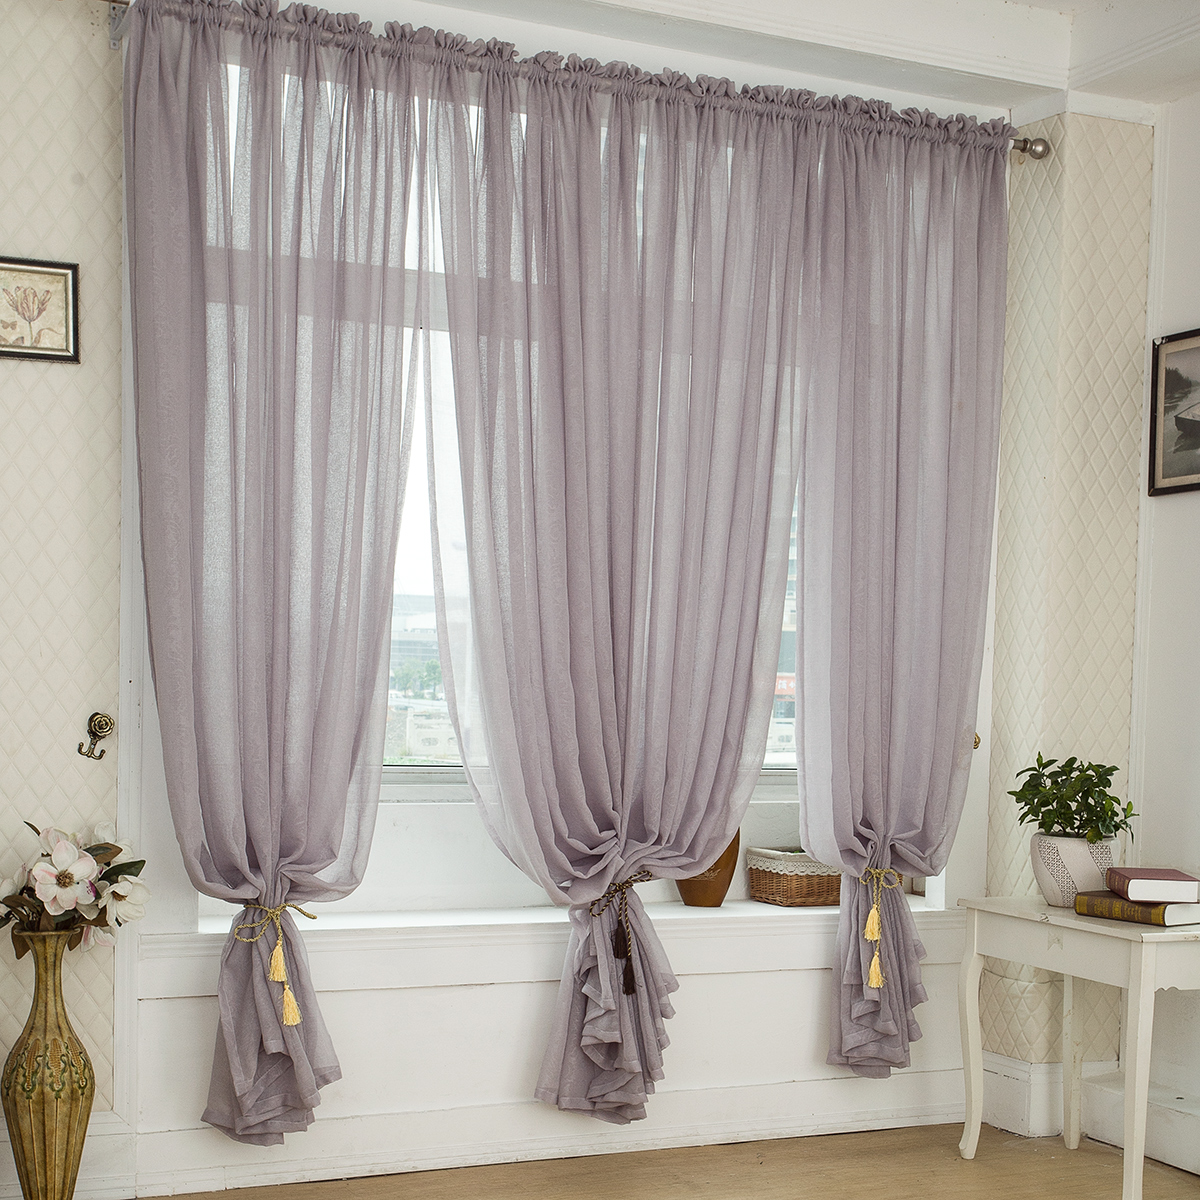 free-shipping-quality-balcony-window-linen-tulle-fabric-finished-product-sheer-curtain-panel